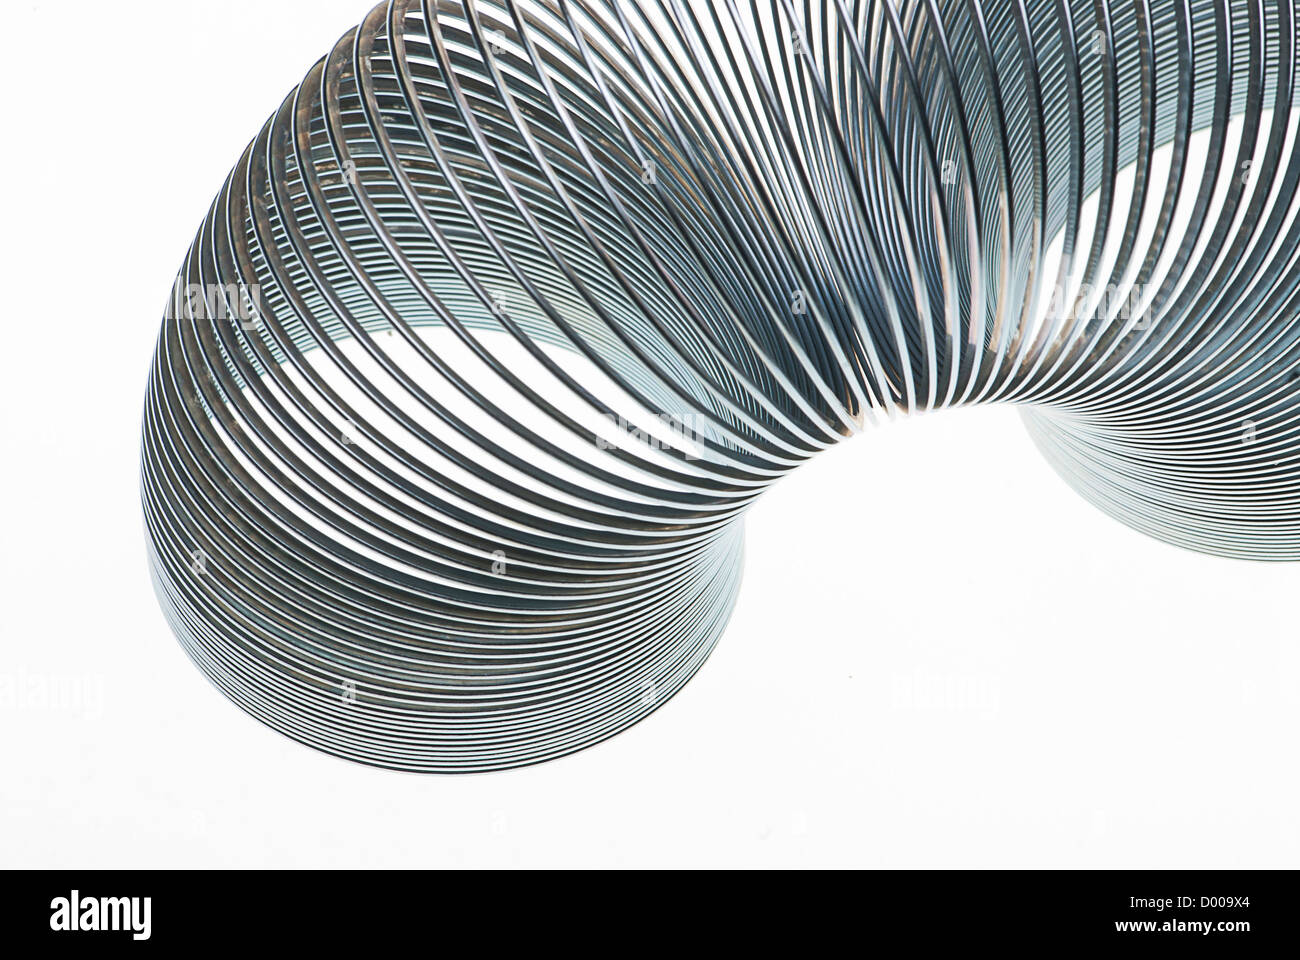 Isolated Slinky on white - Stock Image